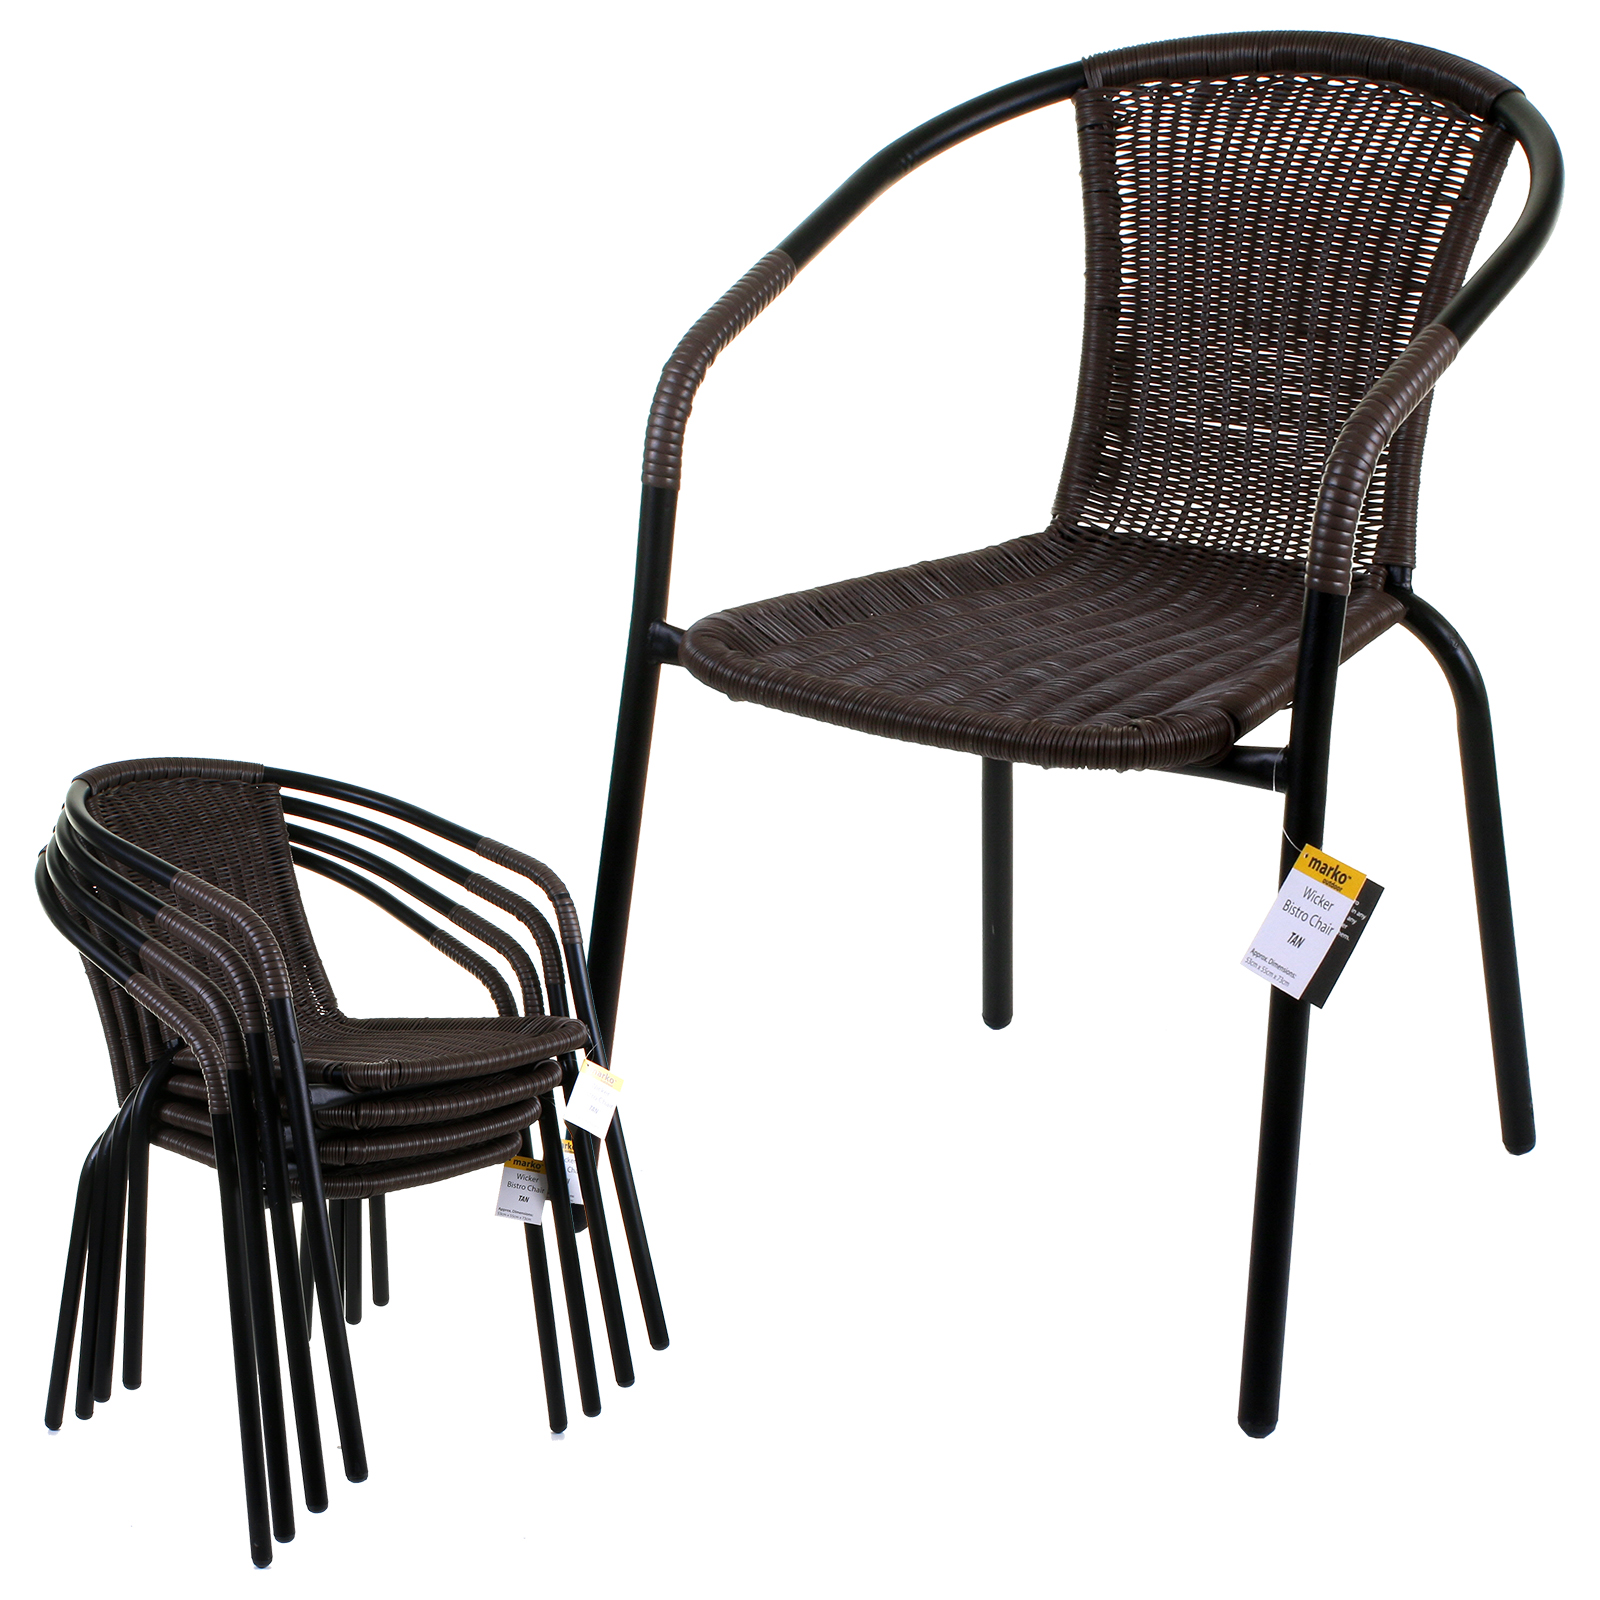 White Bistro Chairs Details About Tan Bistro Chair Garden Wicker Rattan Metal Frame Woven Seats Indoor Outdoor New